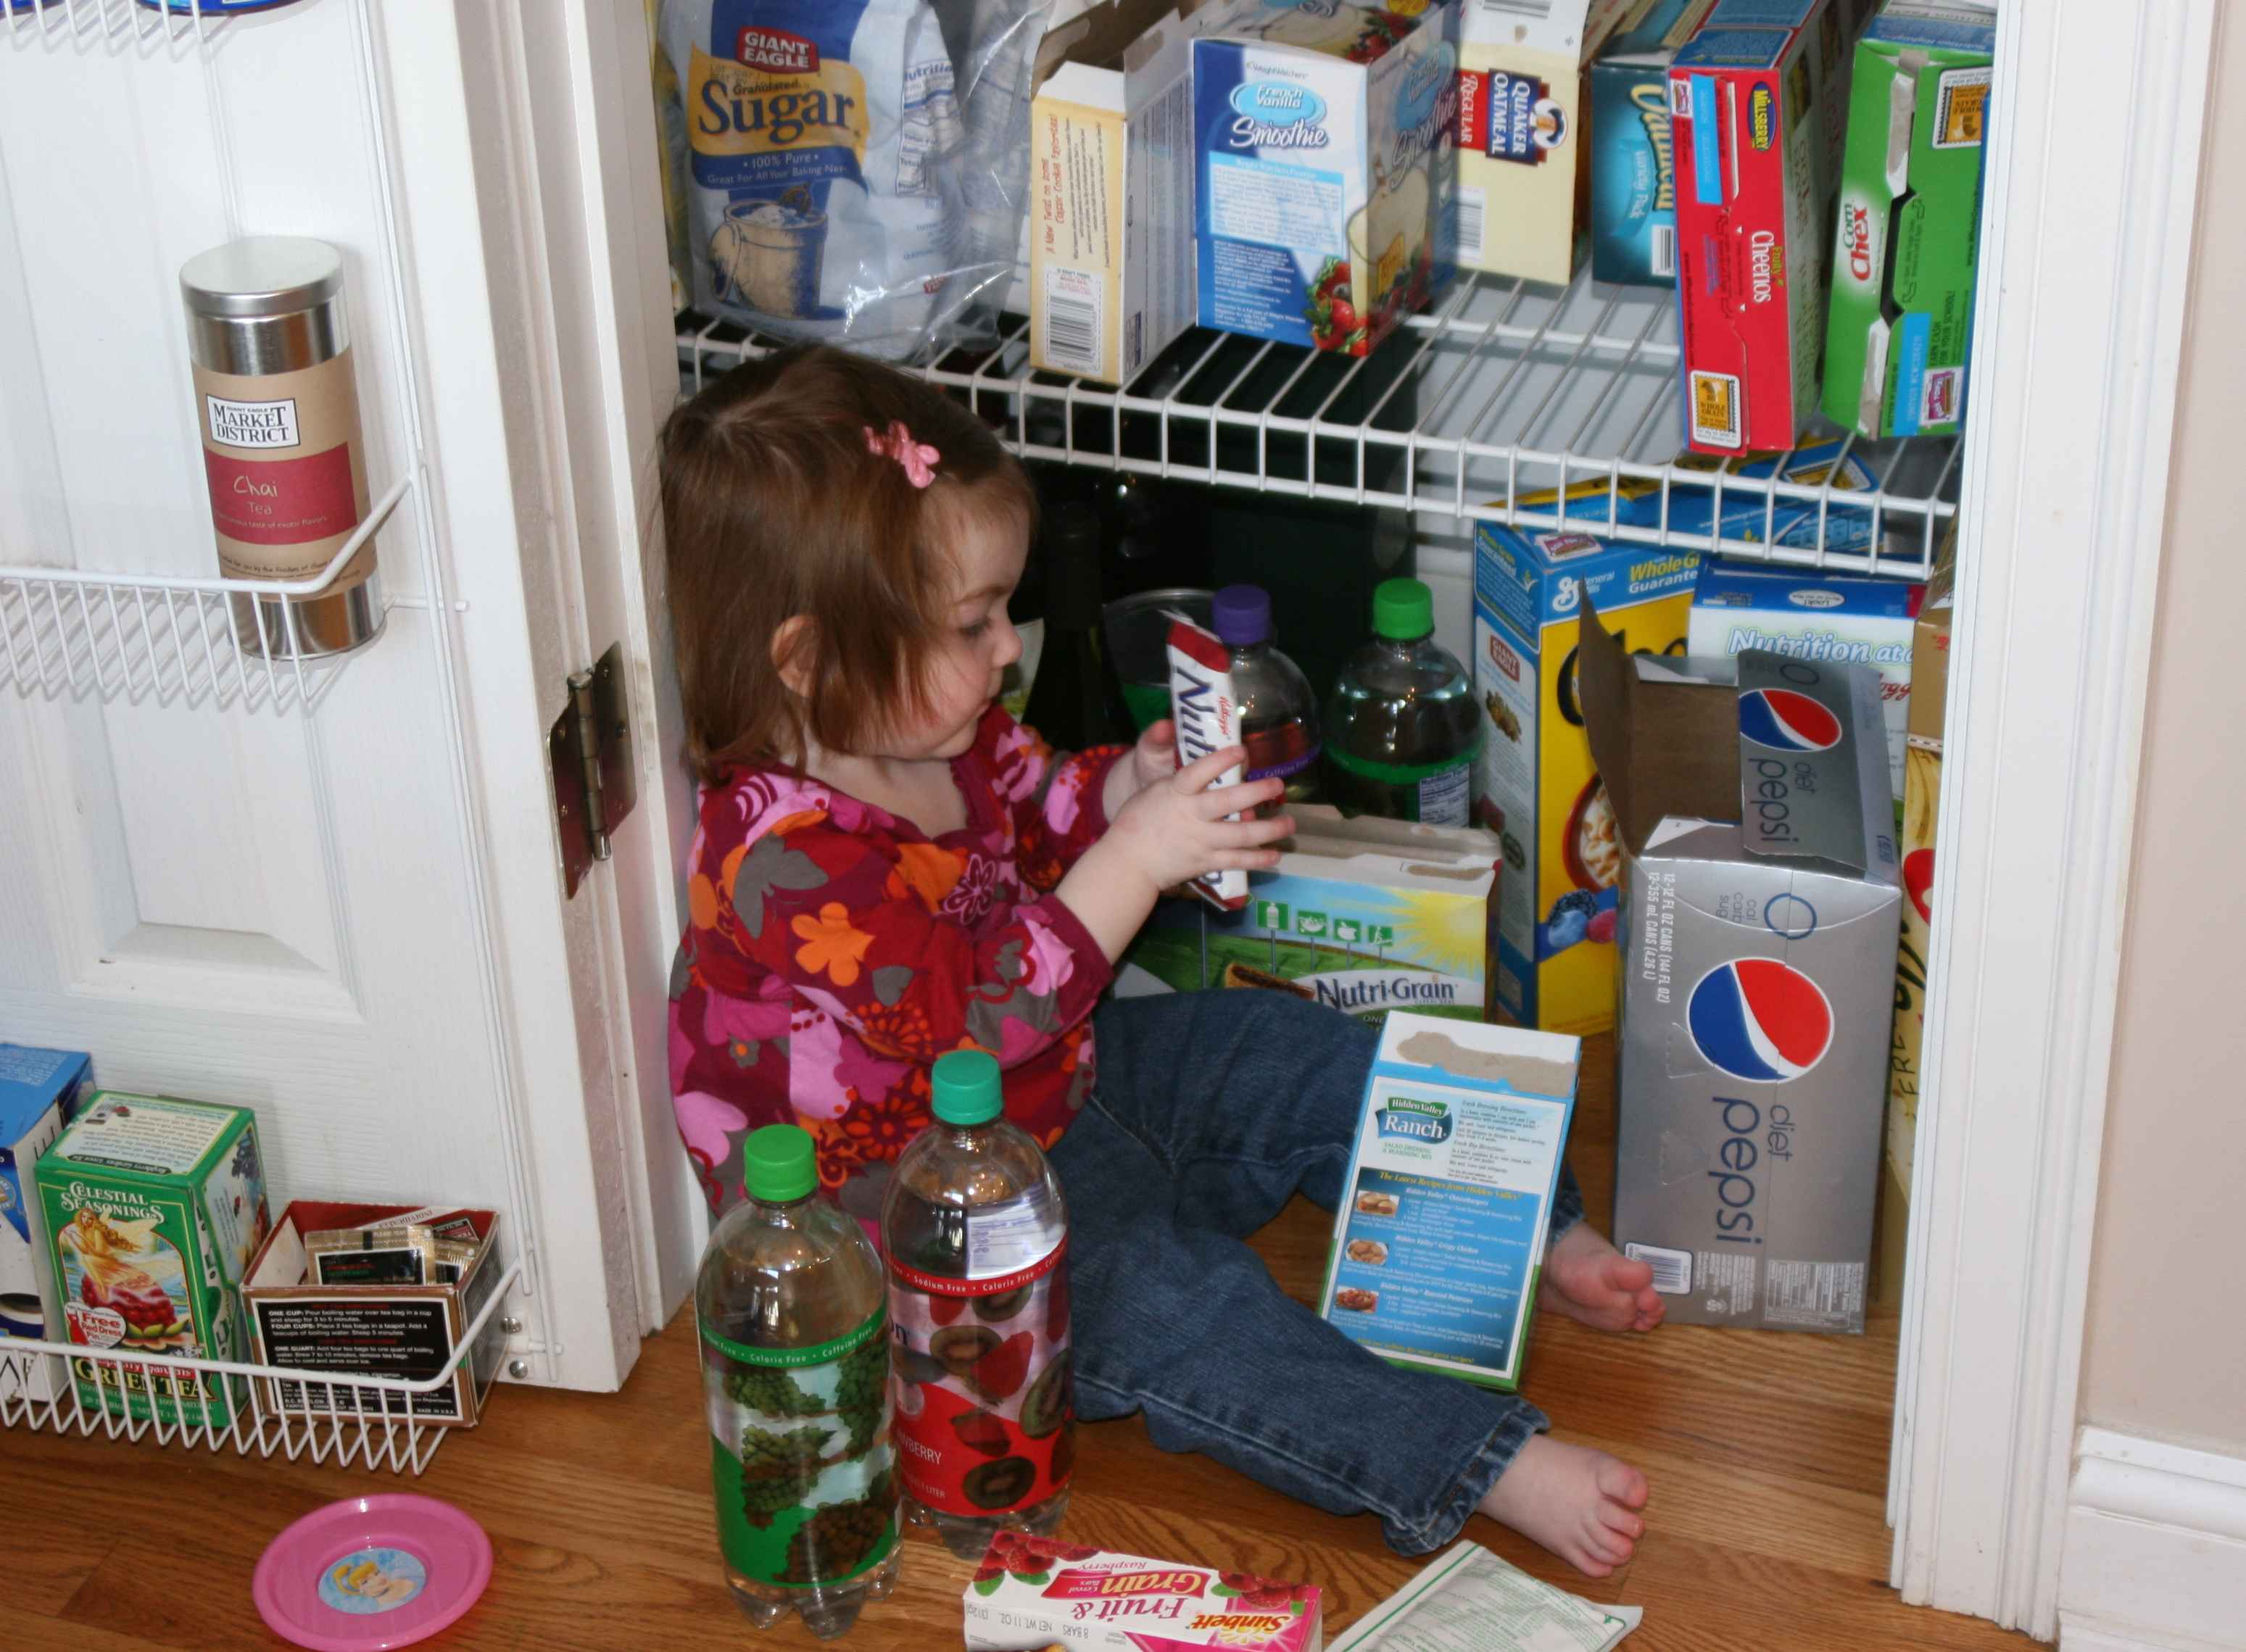 brooke_in_pantry_edit_sm